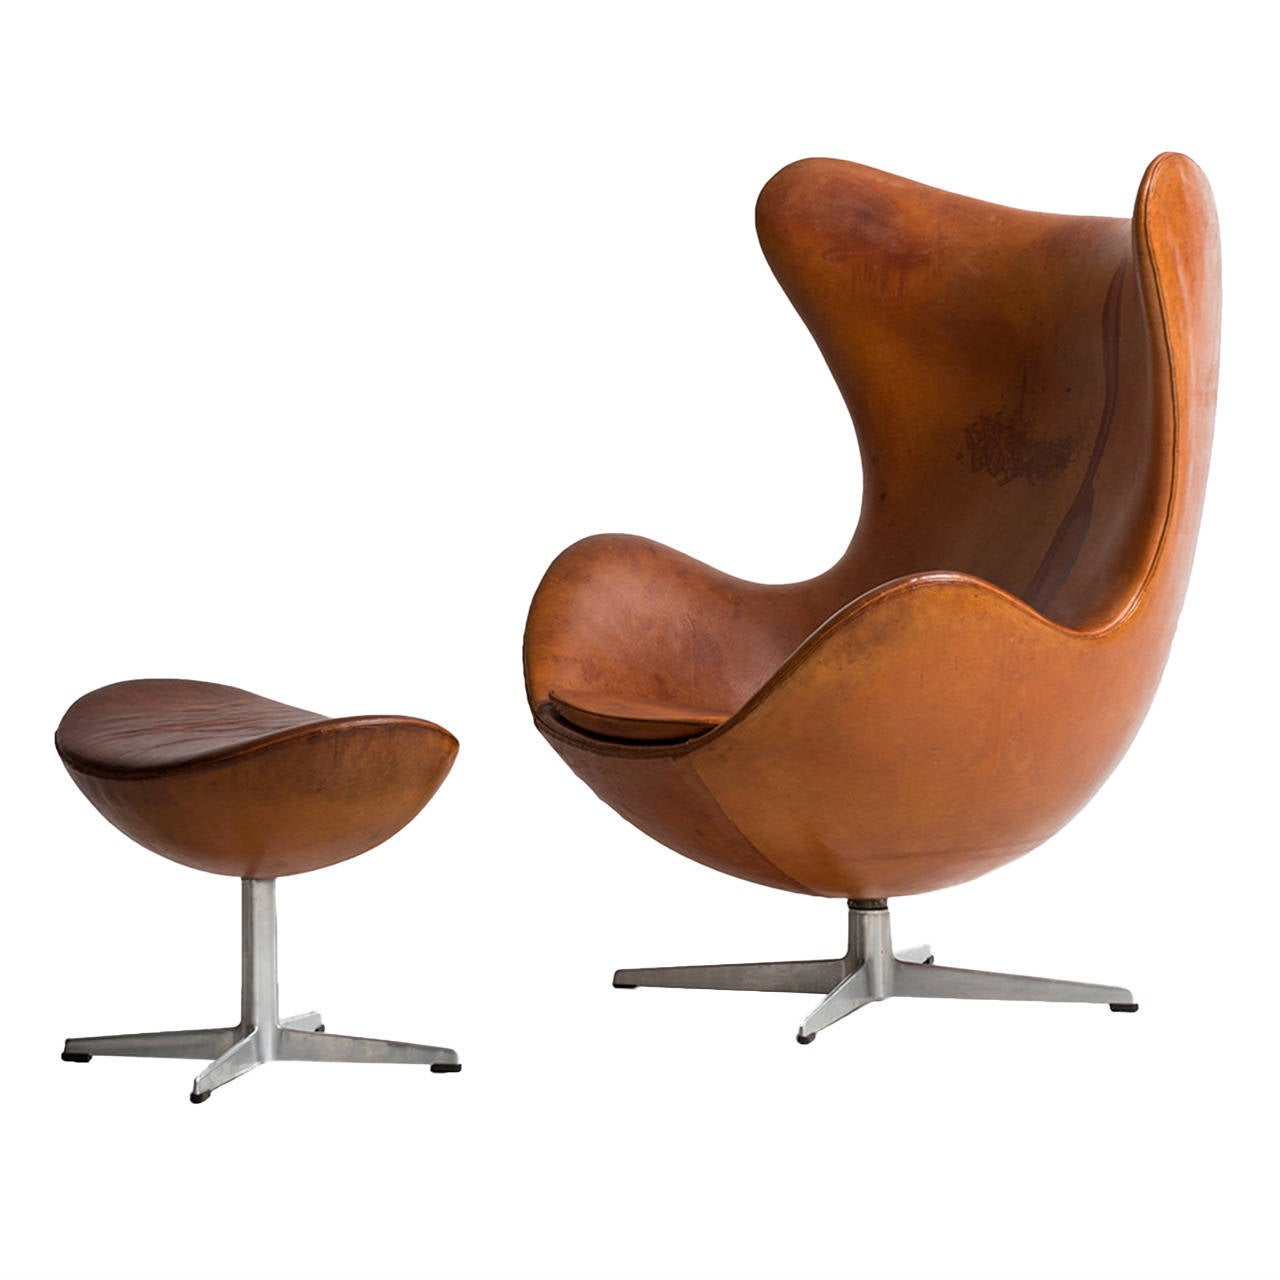 This arne jacobsen swan chair in cognac leather by fritz hansen is no - Arne Jacobsen Egg Chair In Original Cognac Brown Leather By Fritz Hansen 1